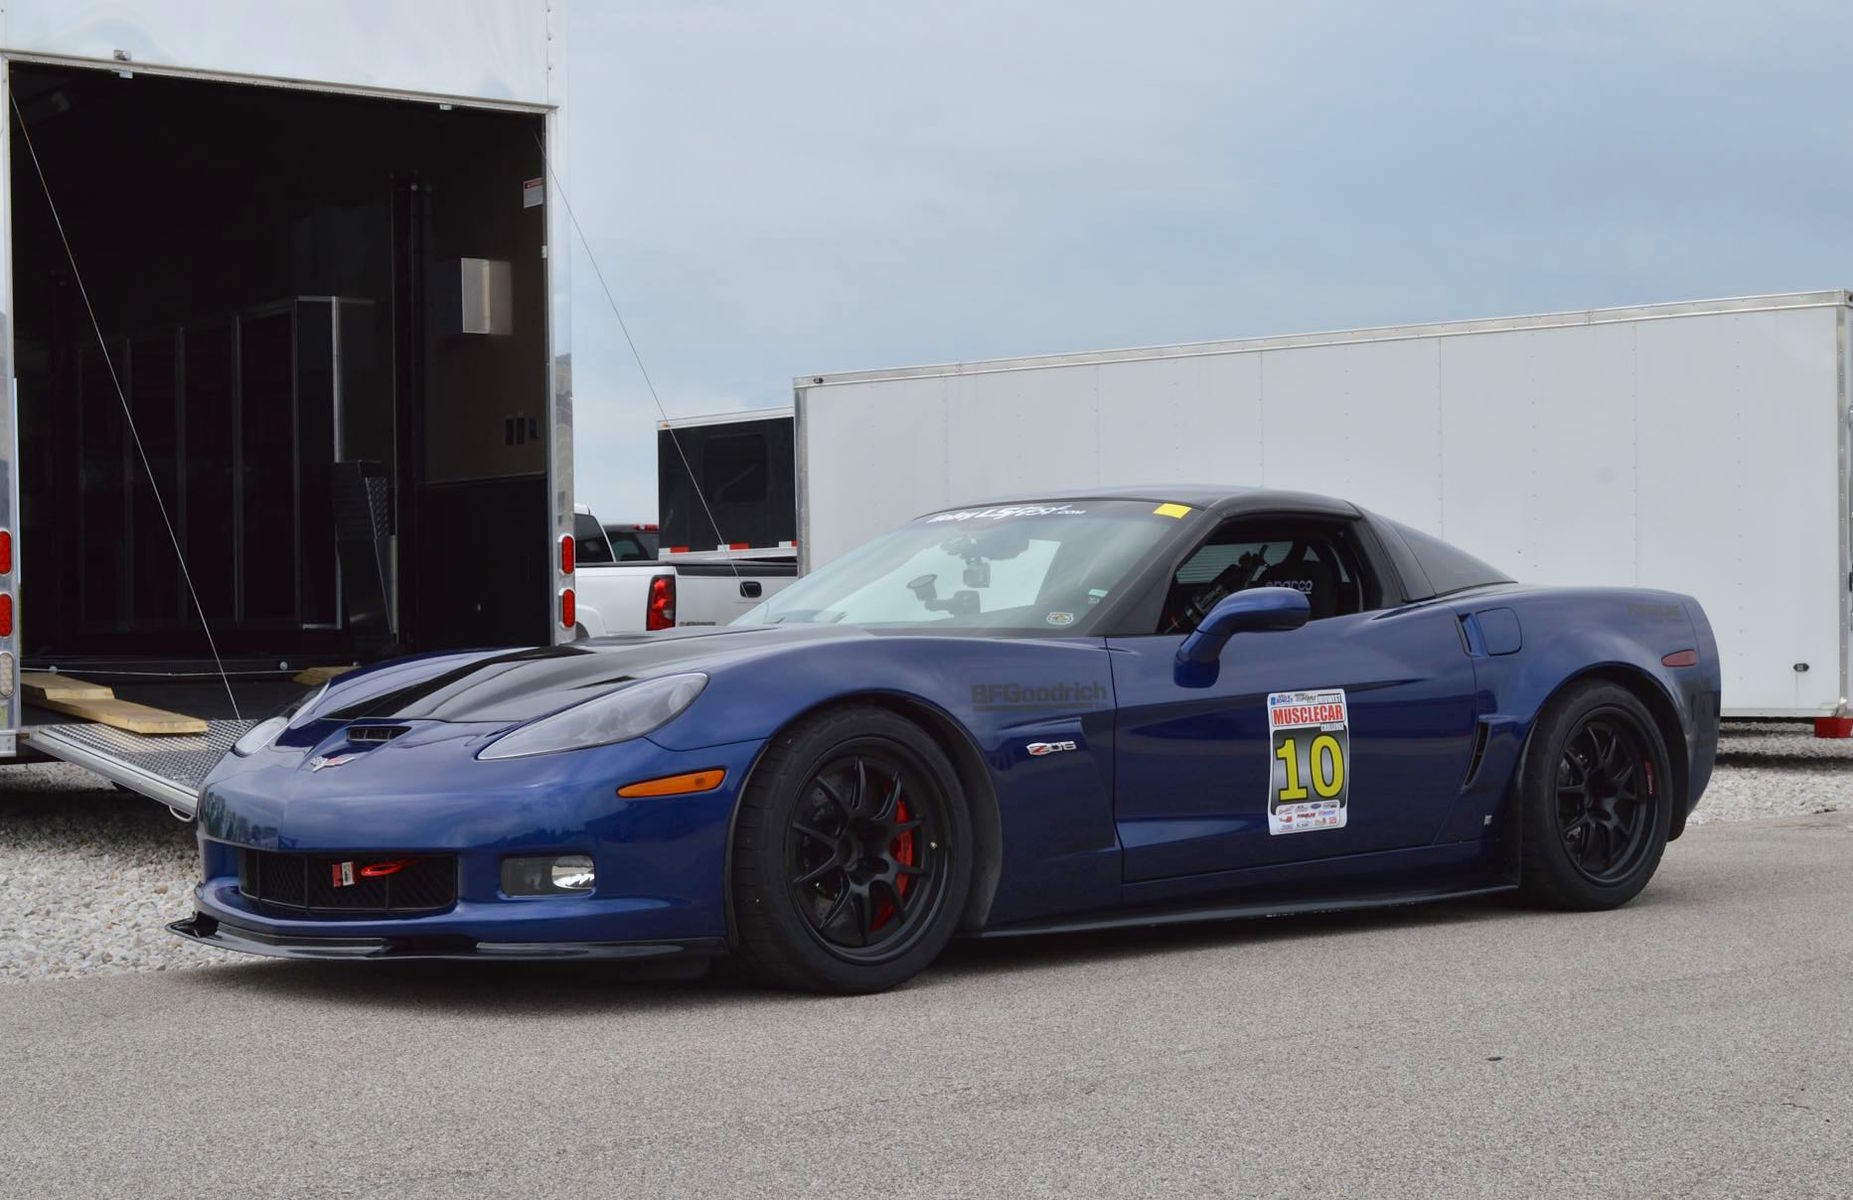 2007 Chevrolet Corvette Z06 | Joe Gregory's C6 Corvette Z06 on Forgeline GA3R Wheels